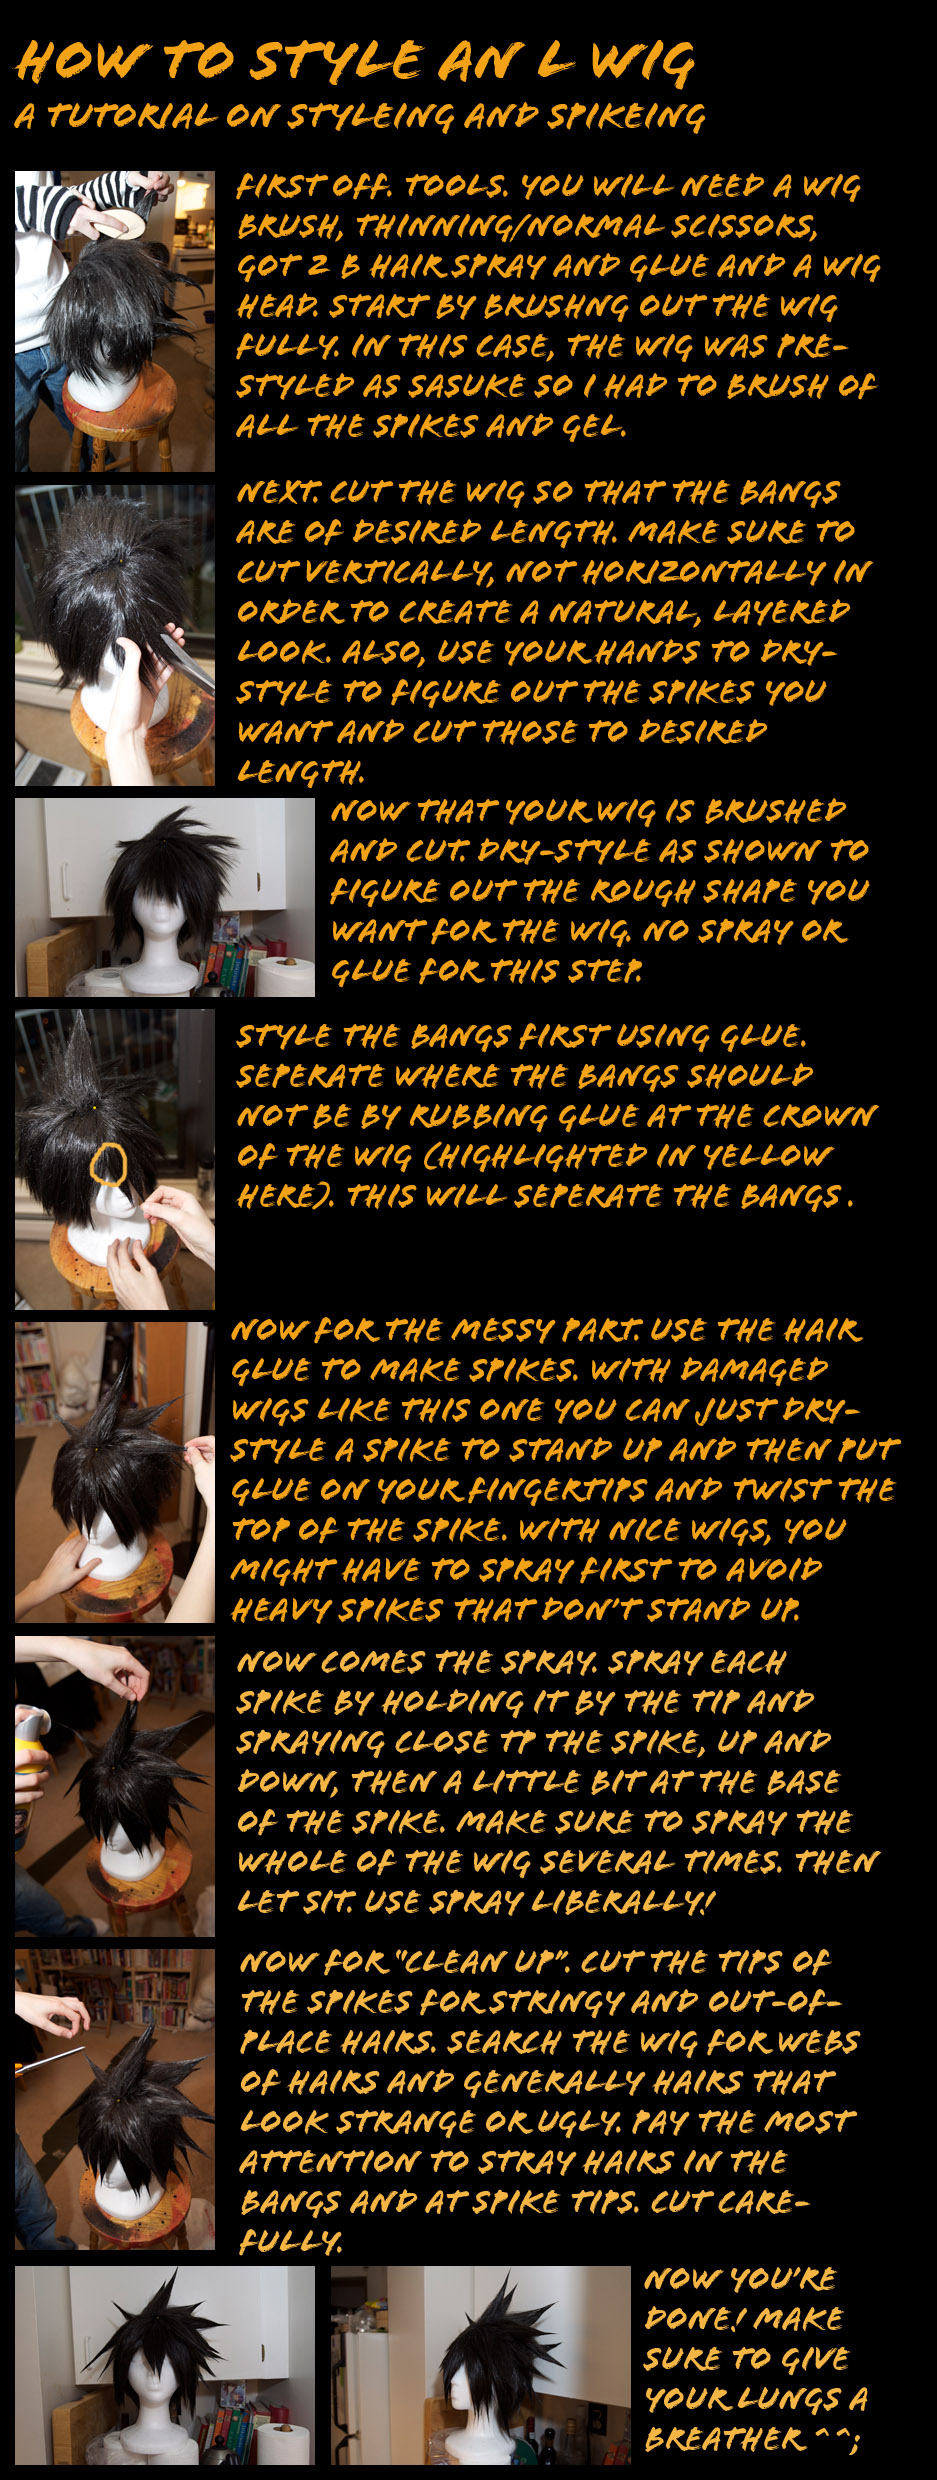 Wig Tutorial L and Spiking